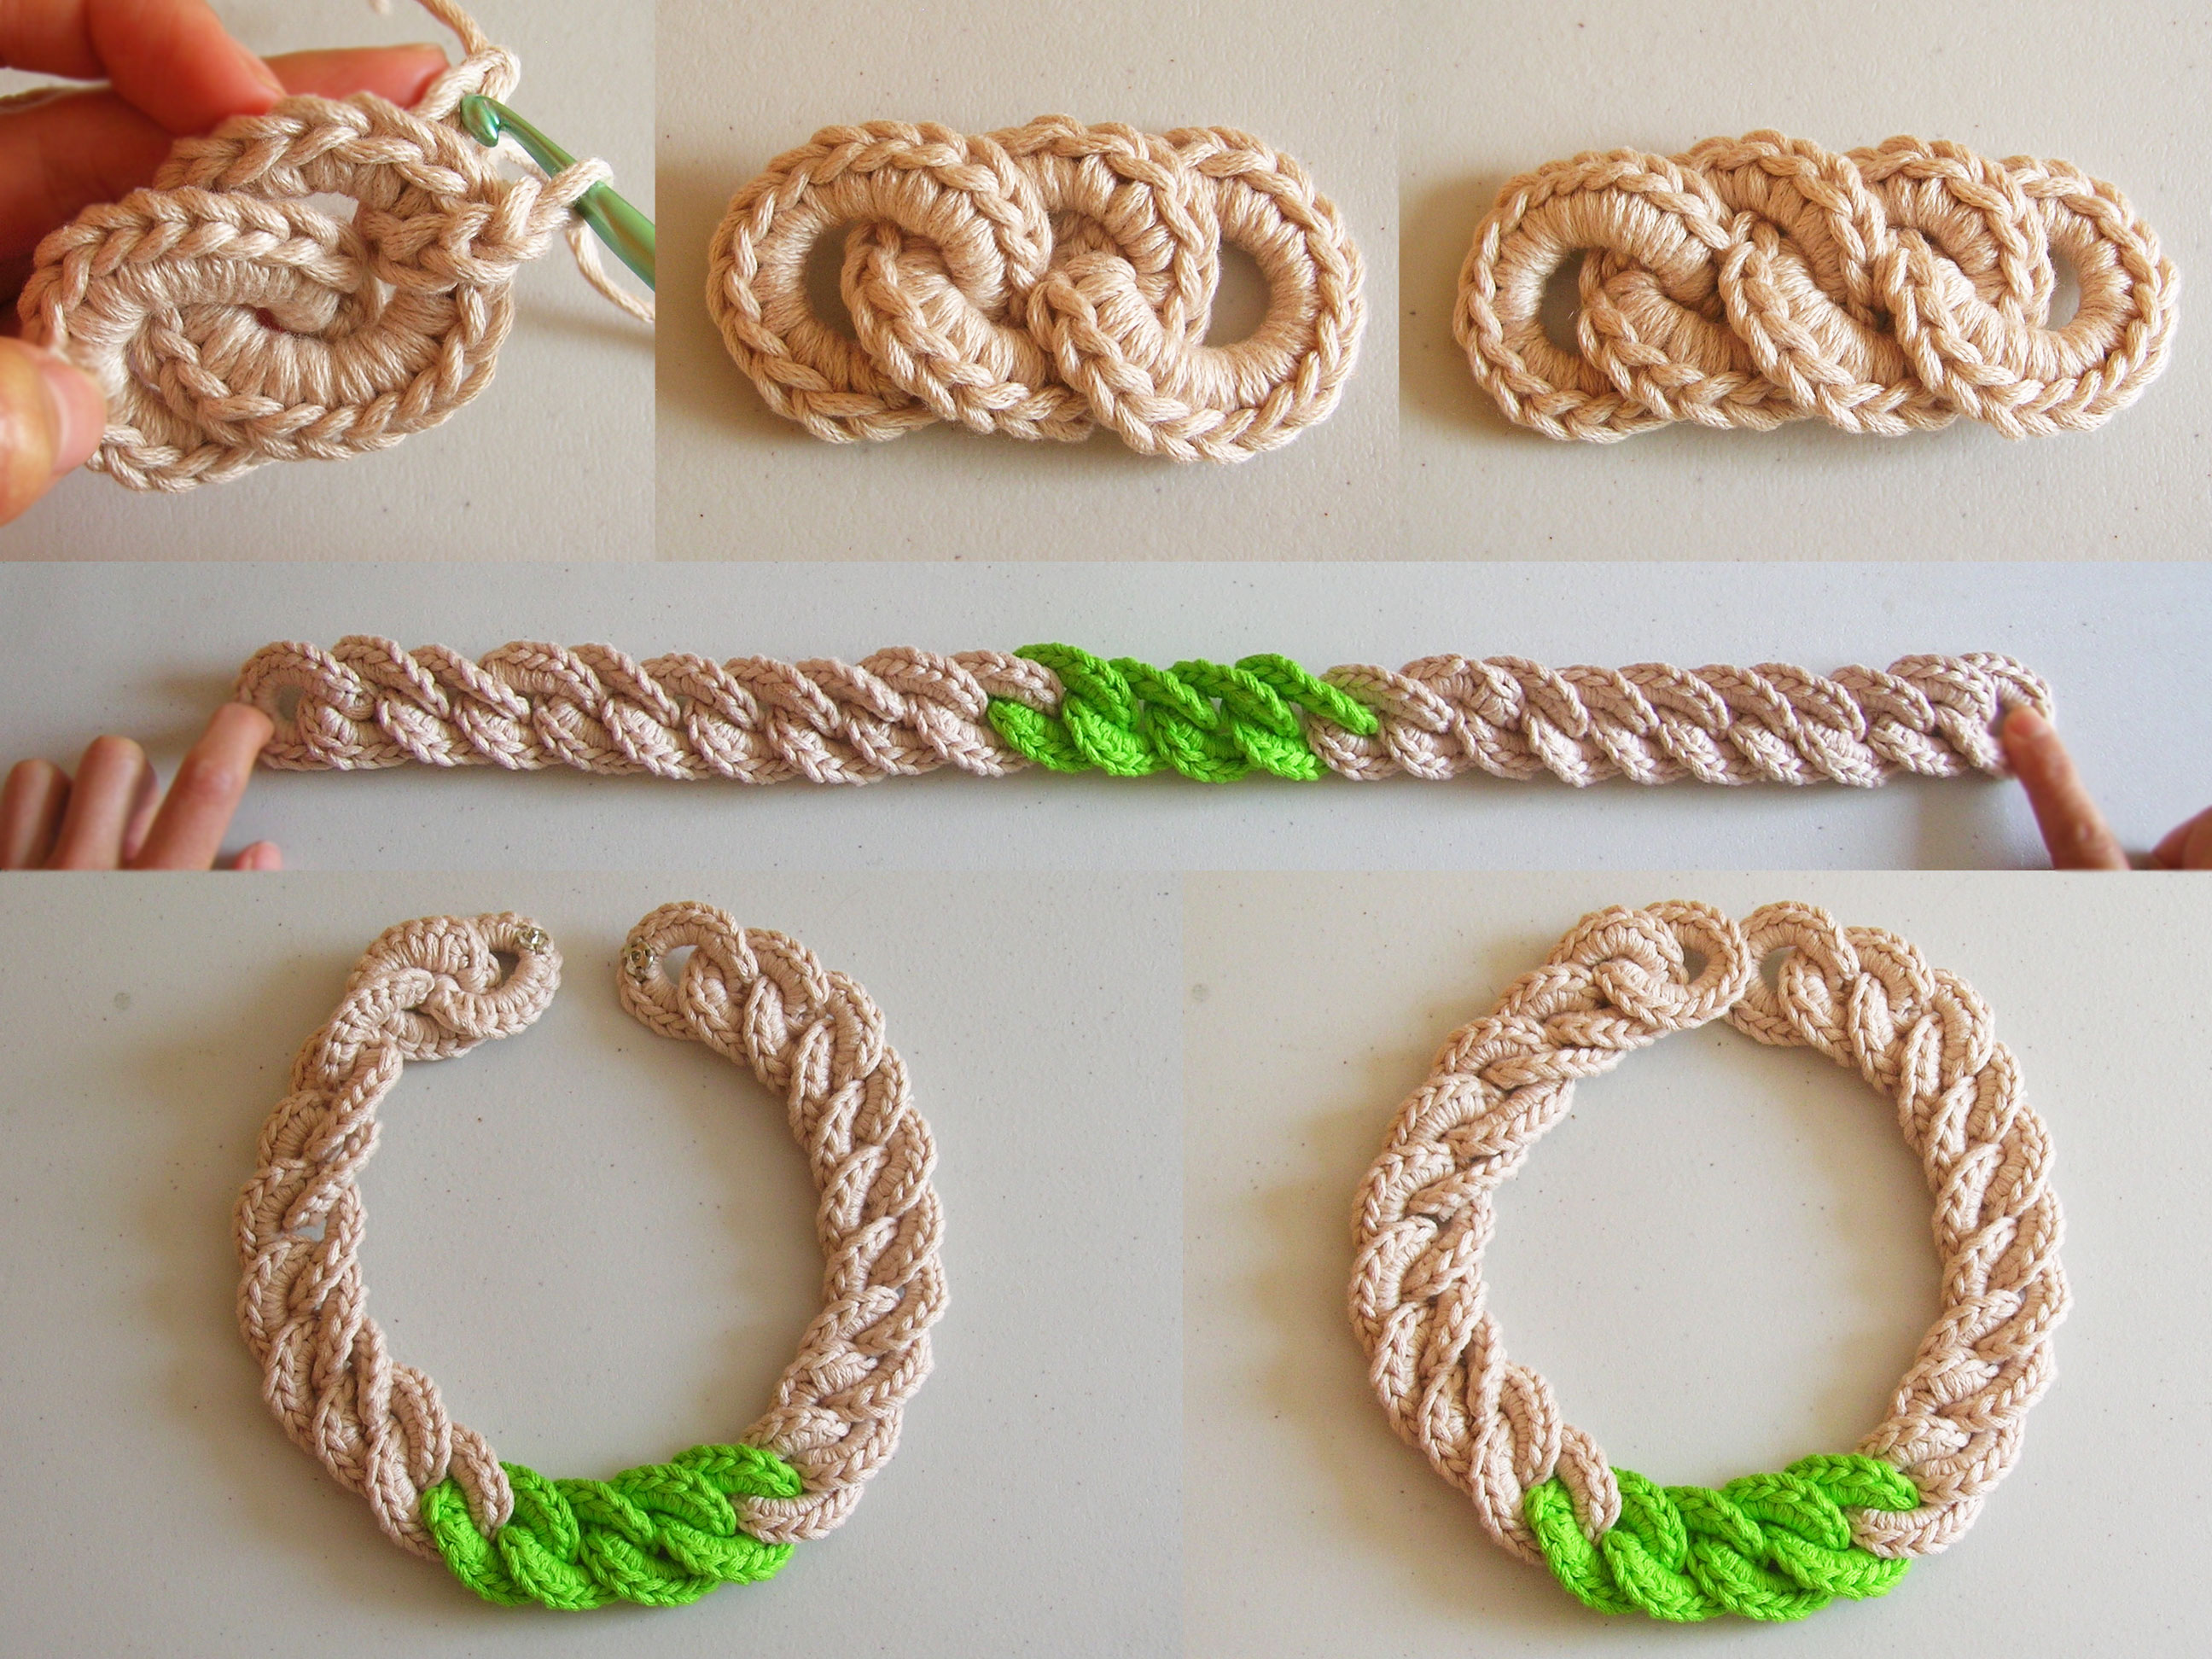 Crochet Chain : Crochet chain necklace / Collar de cadena tejida Chabepatterns